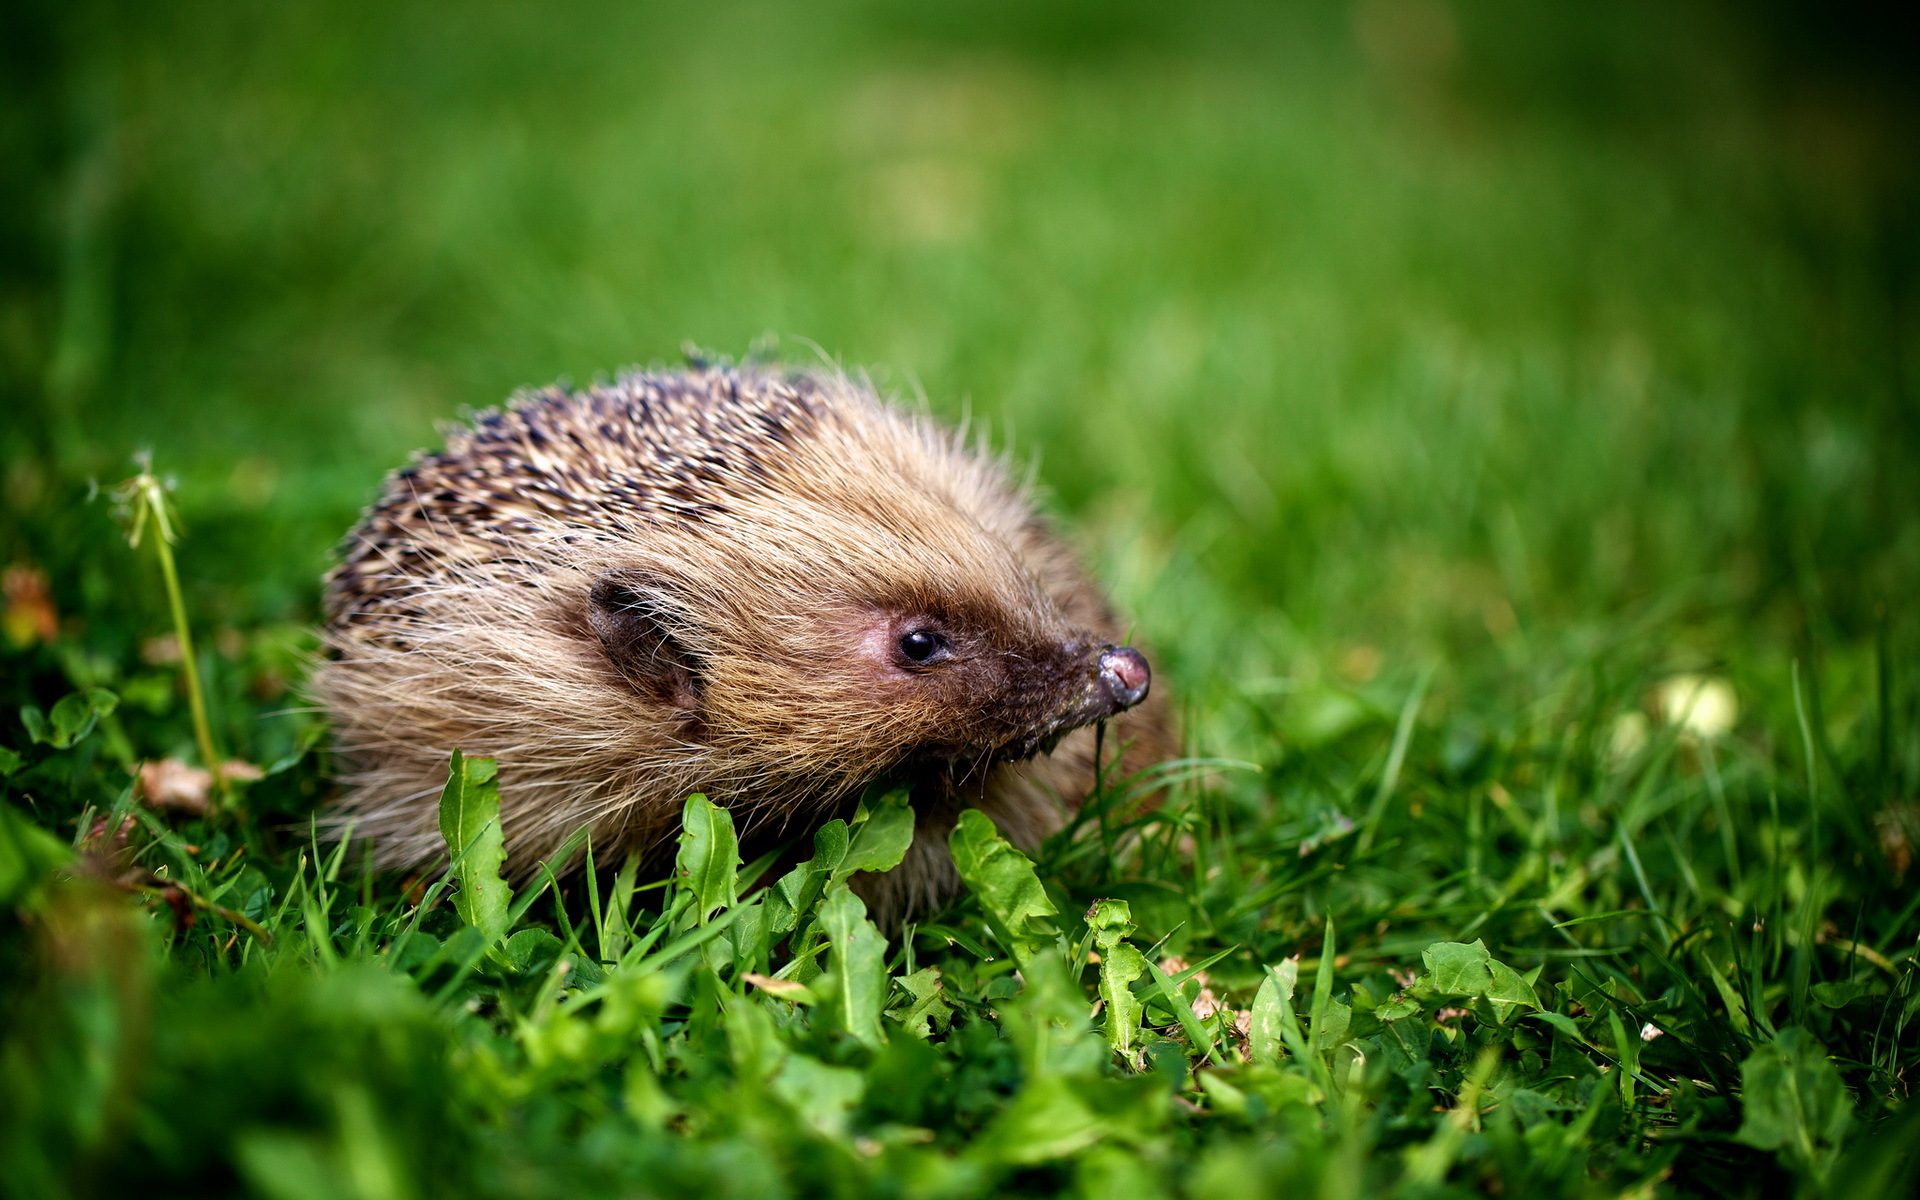 Cute Newborn Baby Hd Wallpapers Hedgehog Full Hd Wallpaper And Background Image